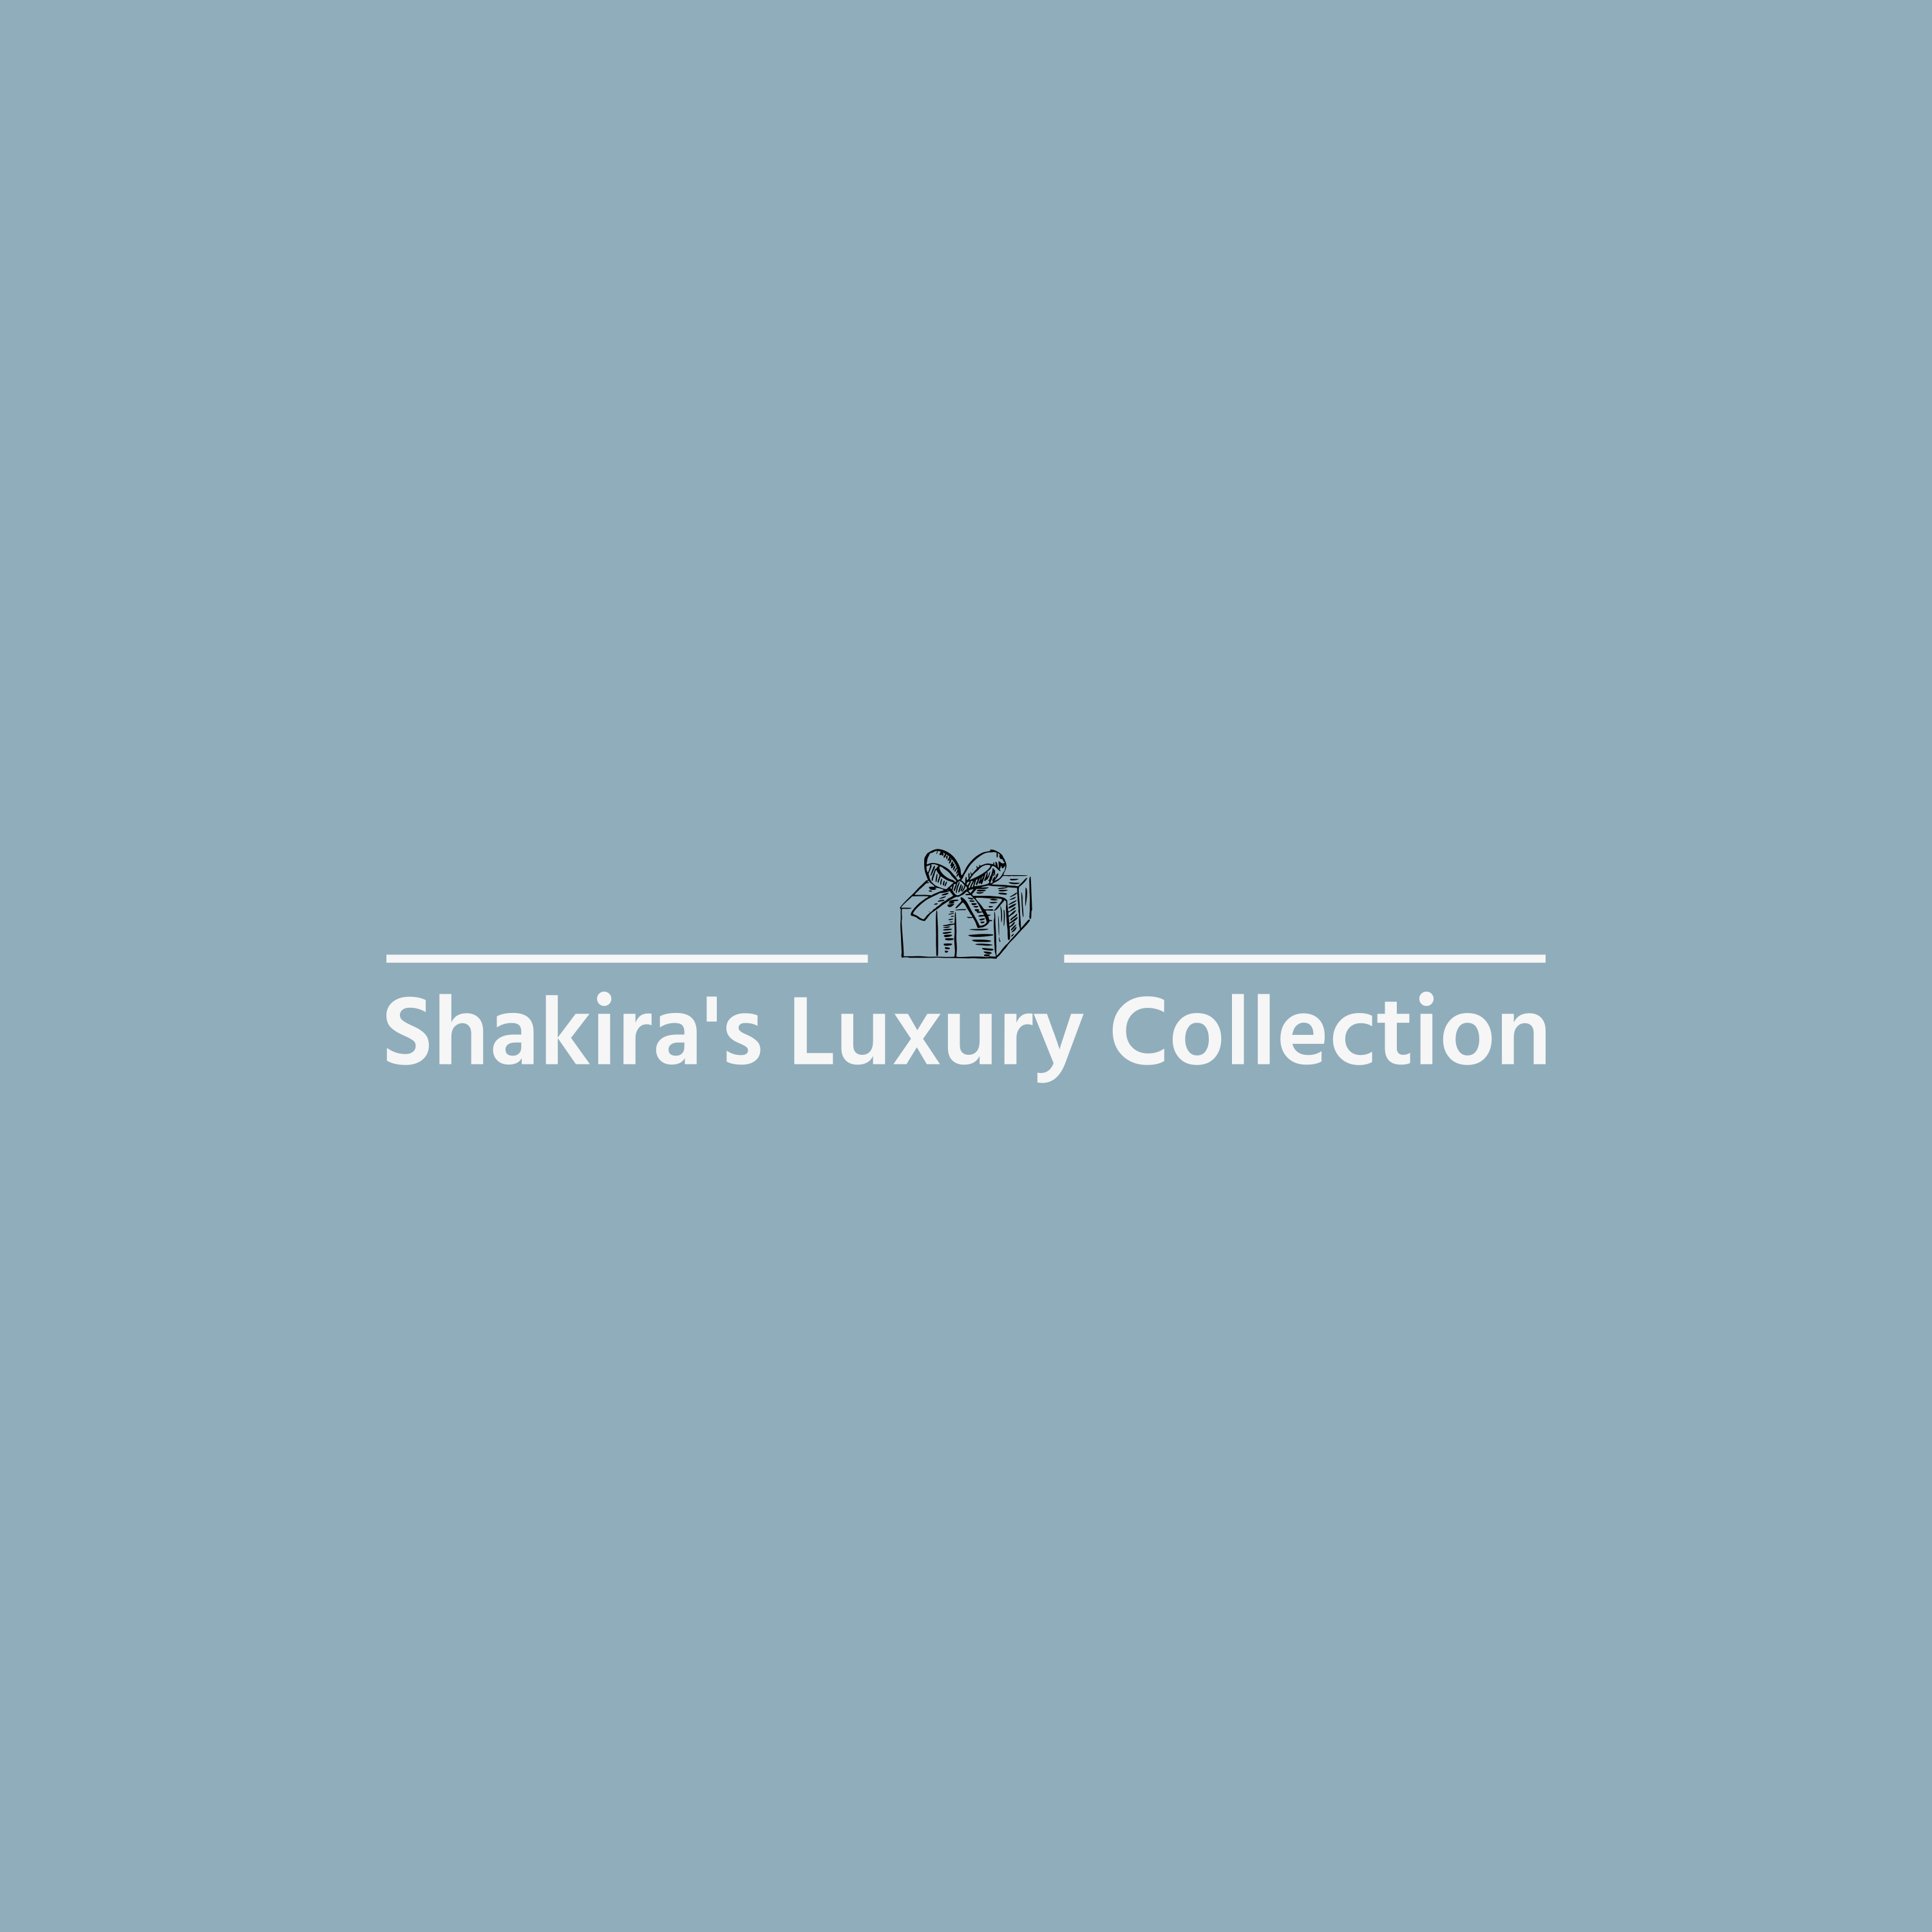 Shakira's Luxury Collection